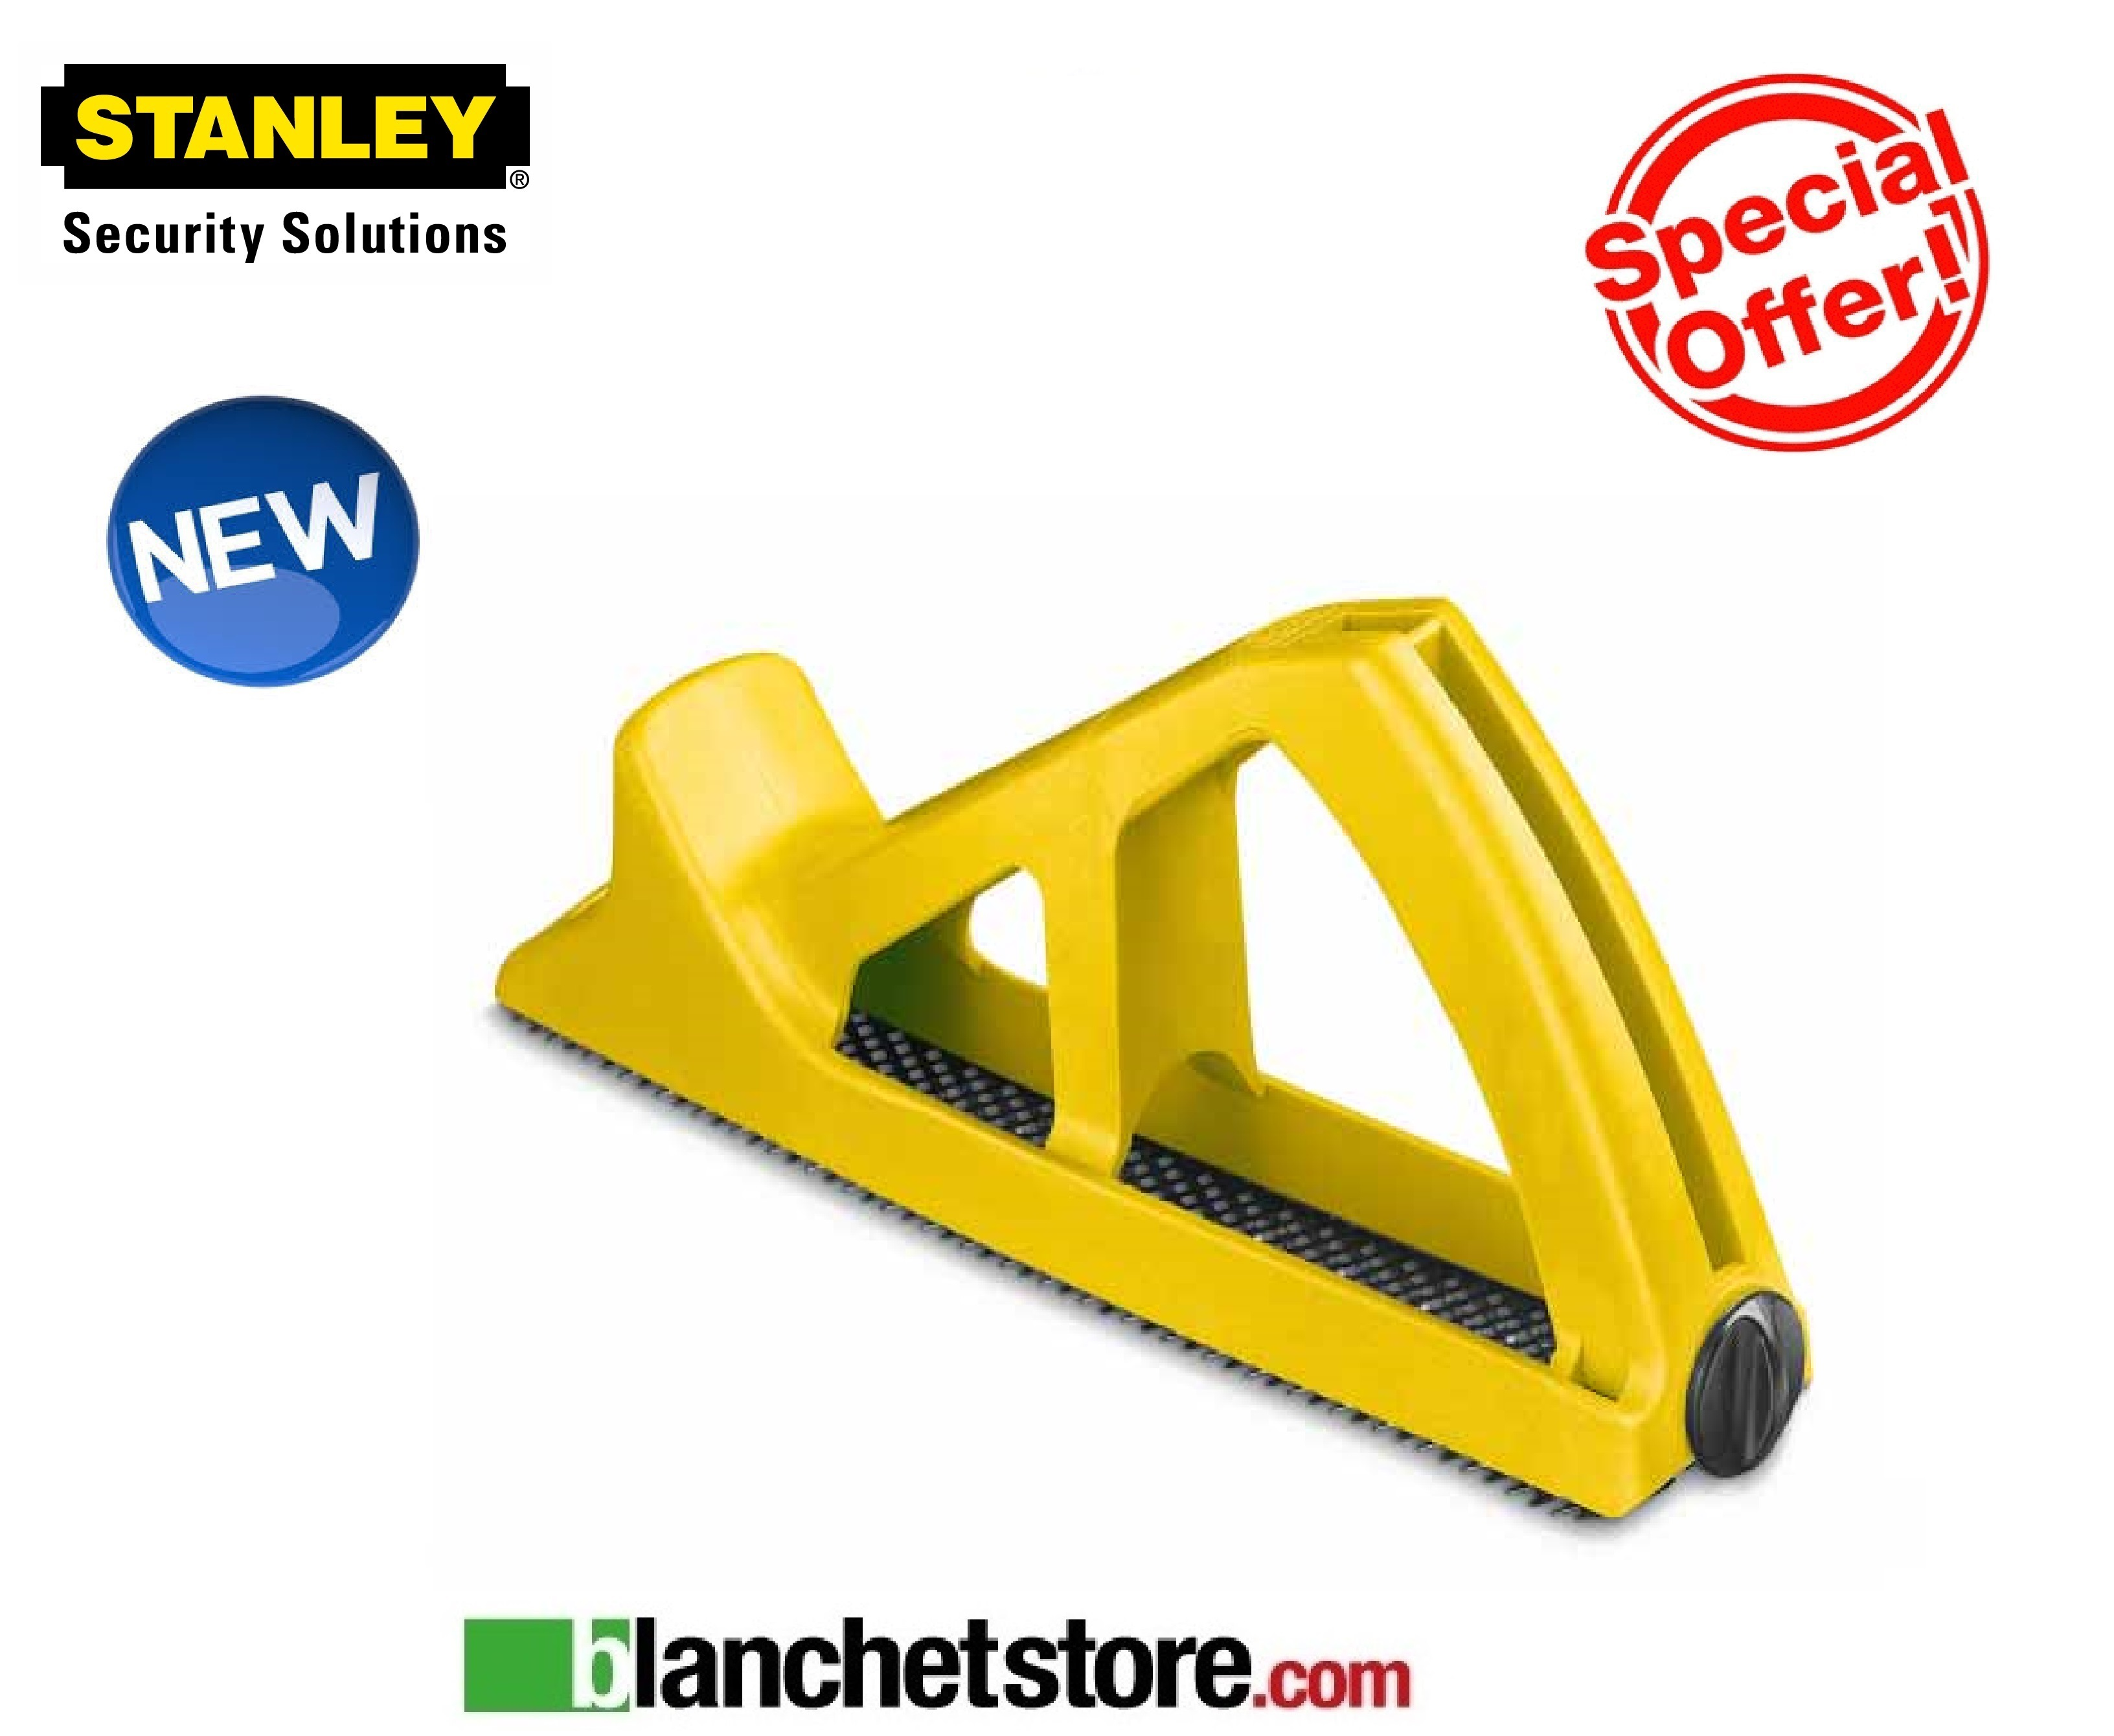 Pialla Stanley Surform grande Lunghezza 270 mm